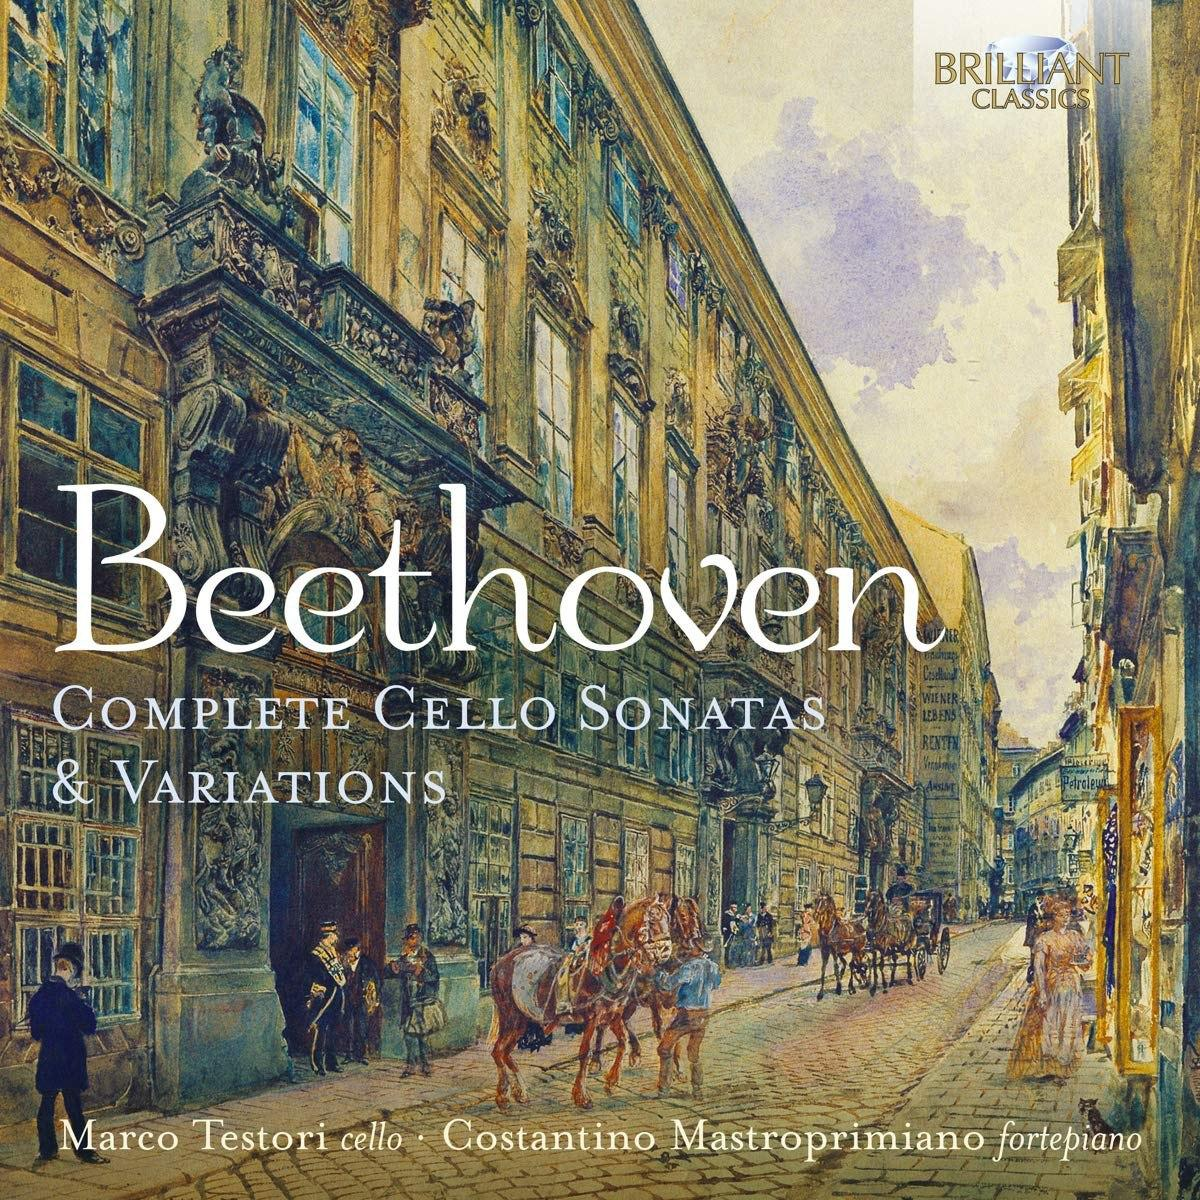 Beethoven Complete Cello Sonatas and Variations